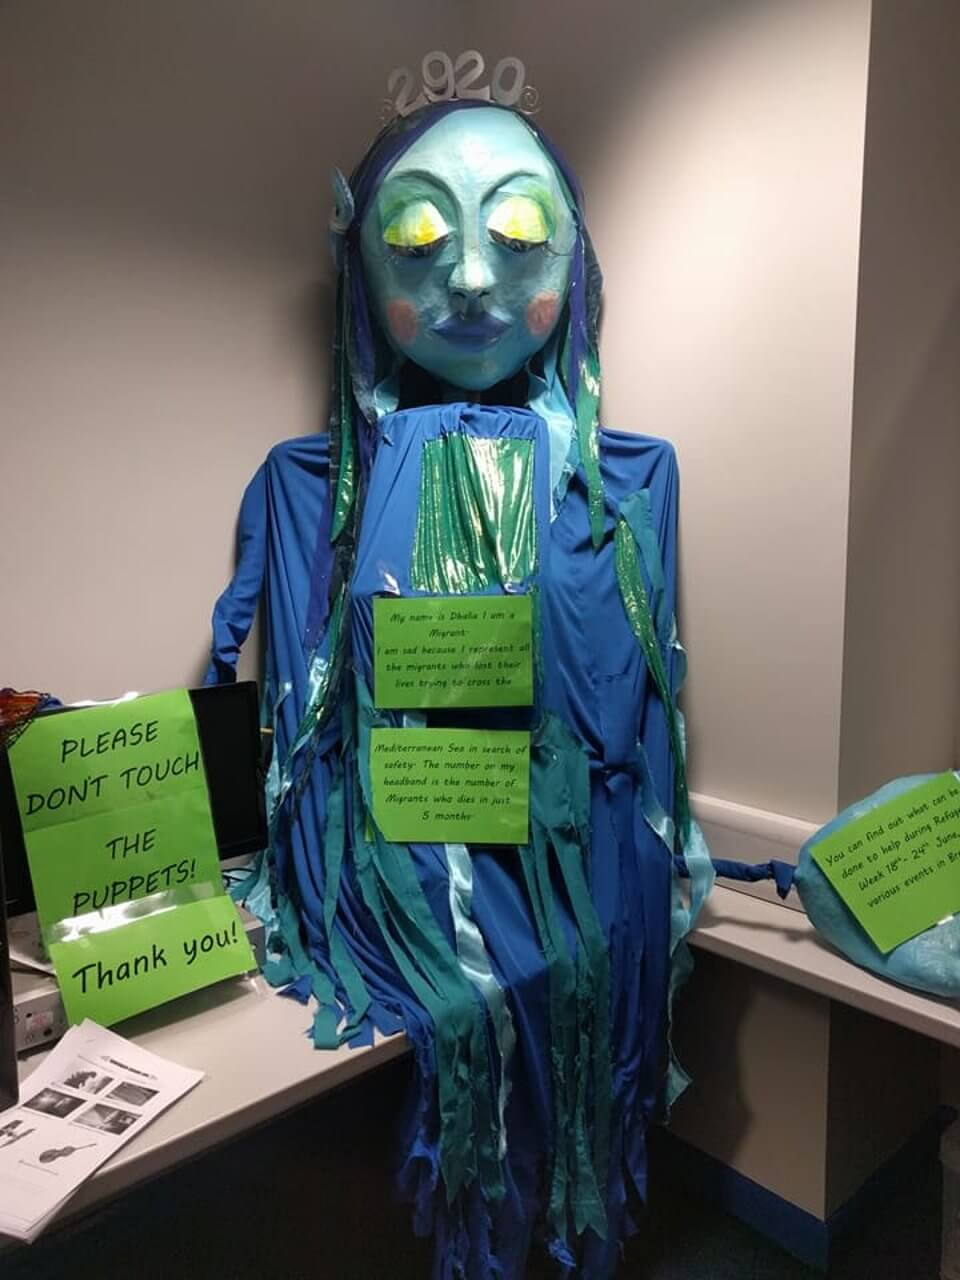 A scary green puppet